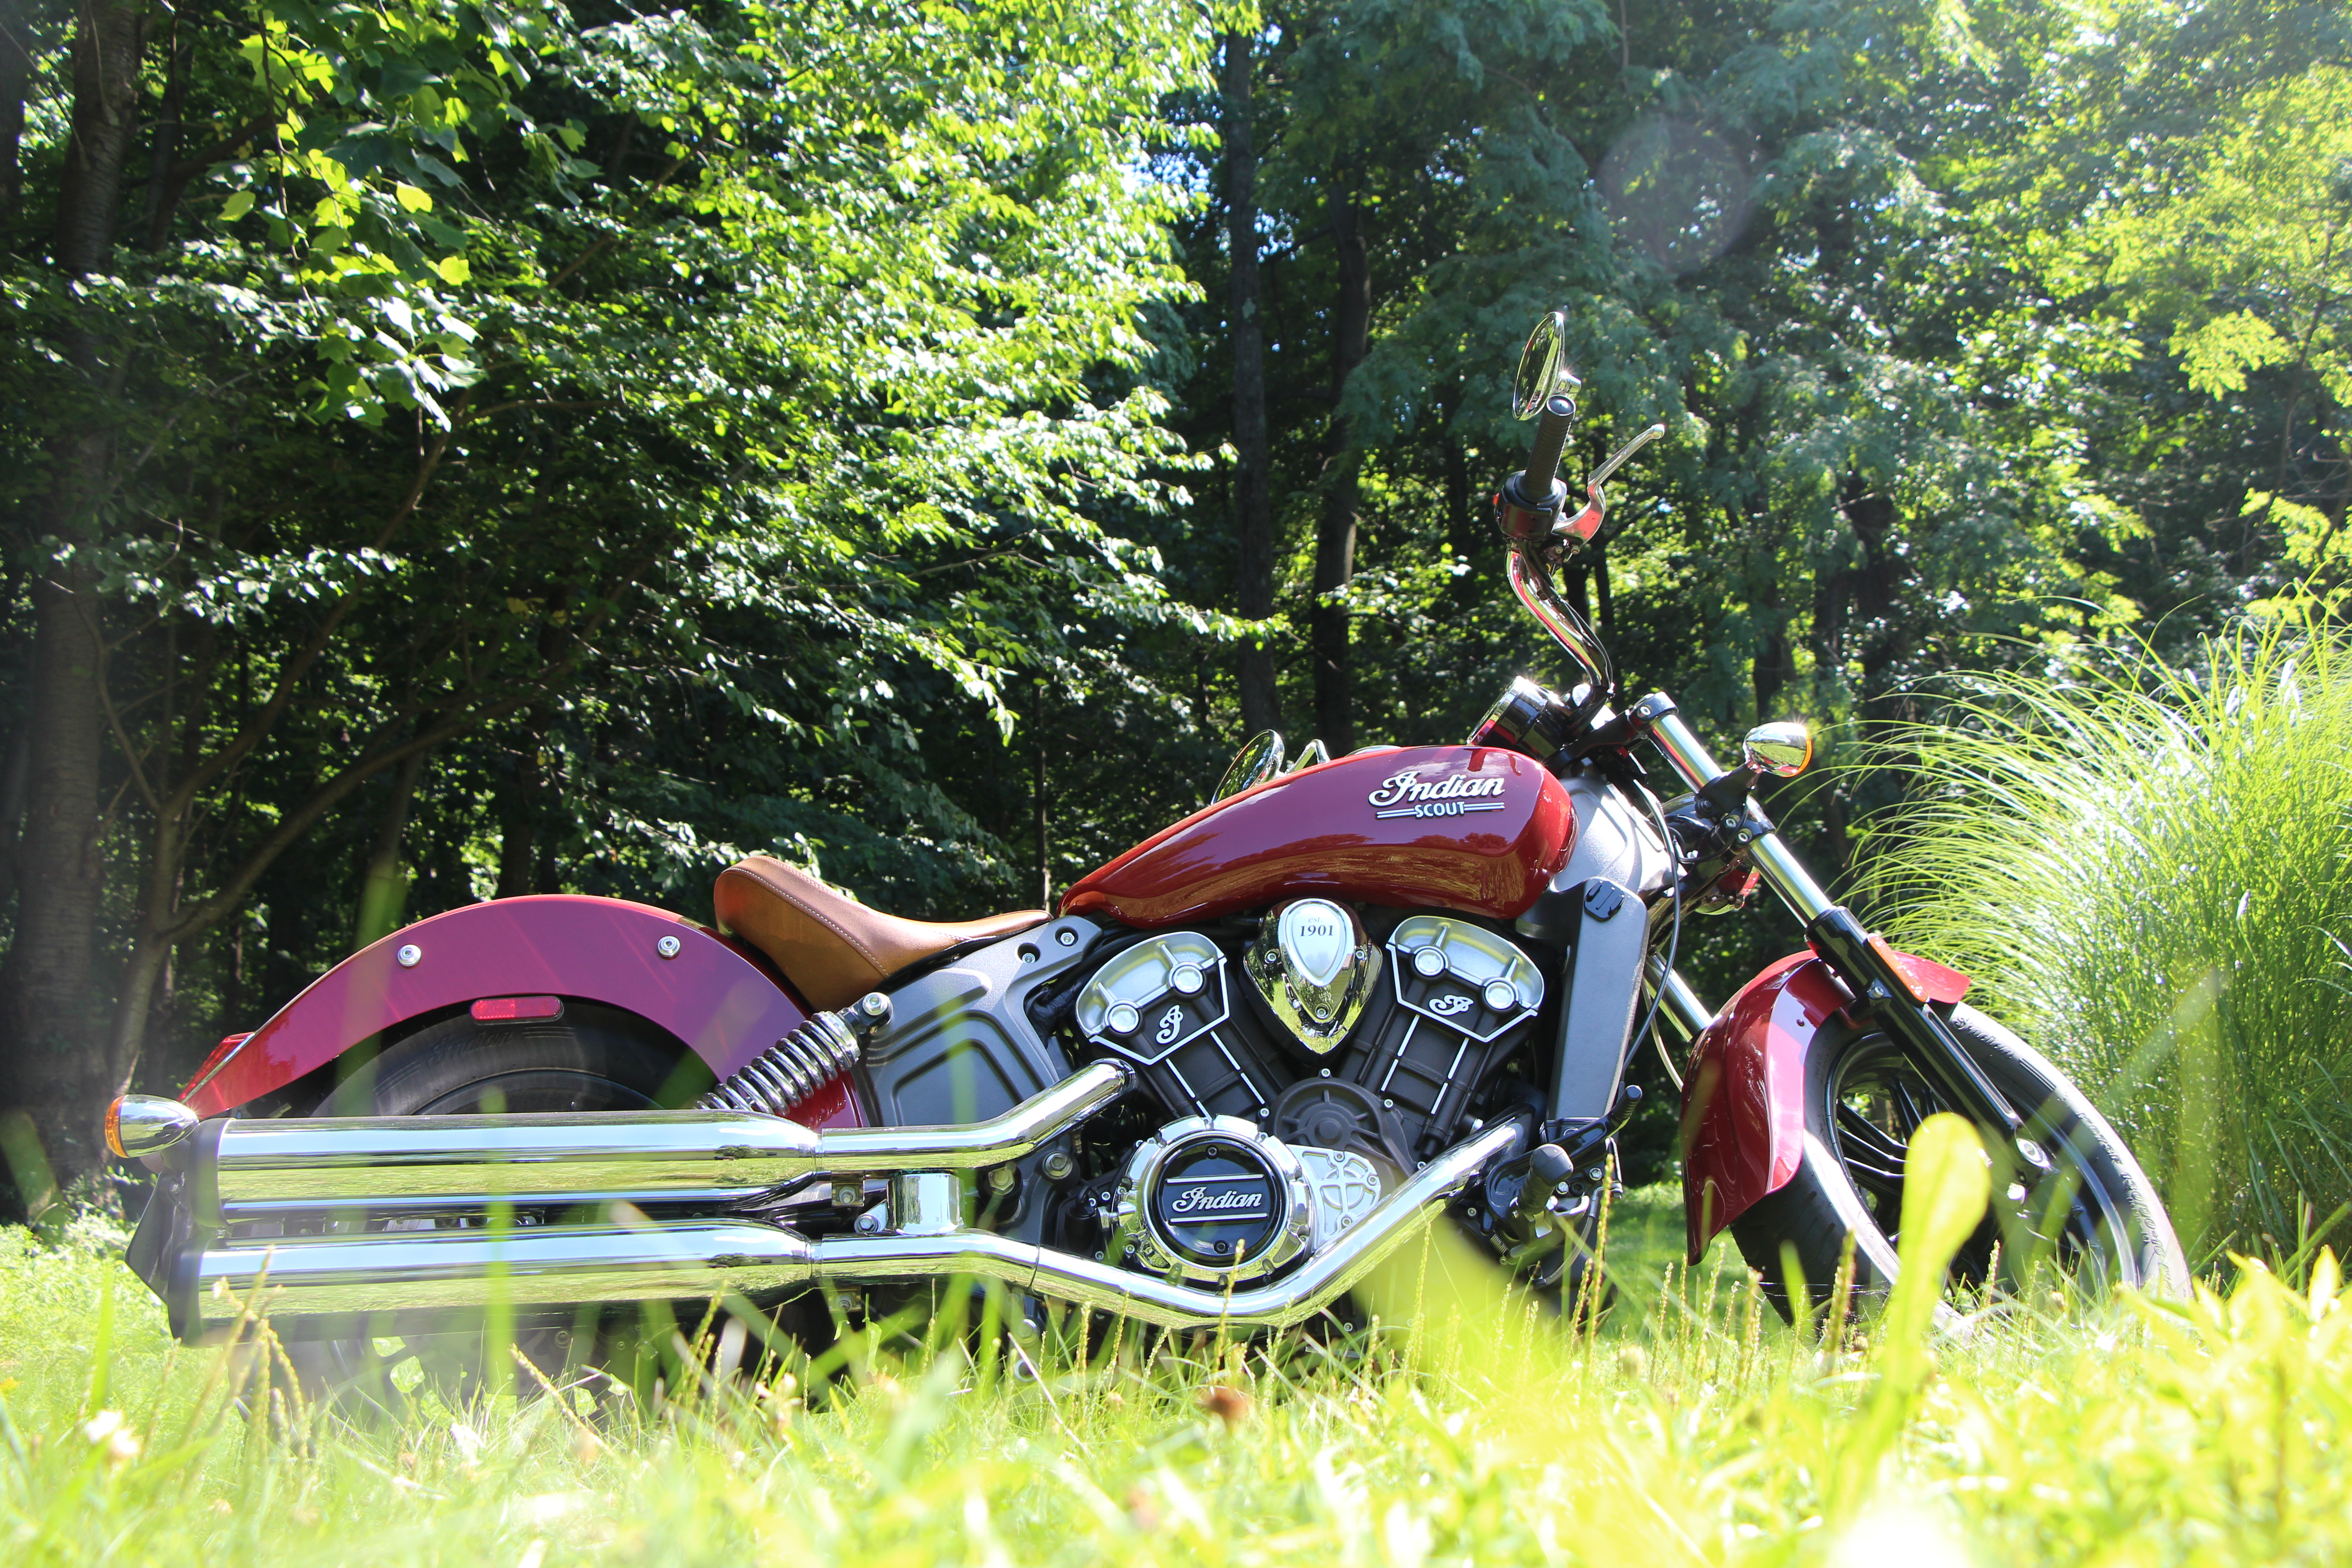 2015 Indian Scout Review Revzilla History Of Motorcycle Engine Heat Control And Liquid Cooling Thunder